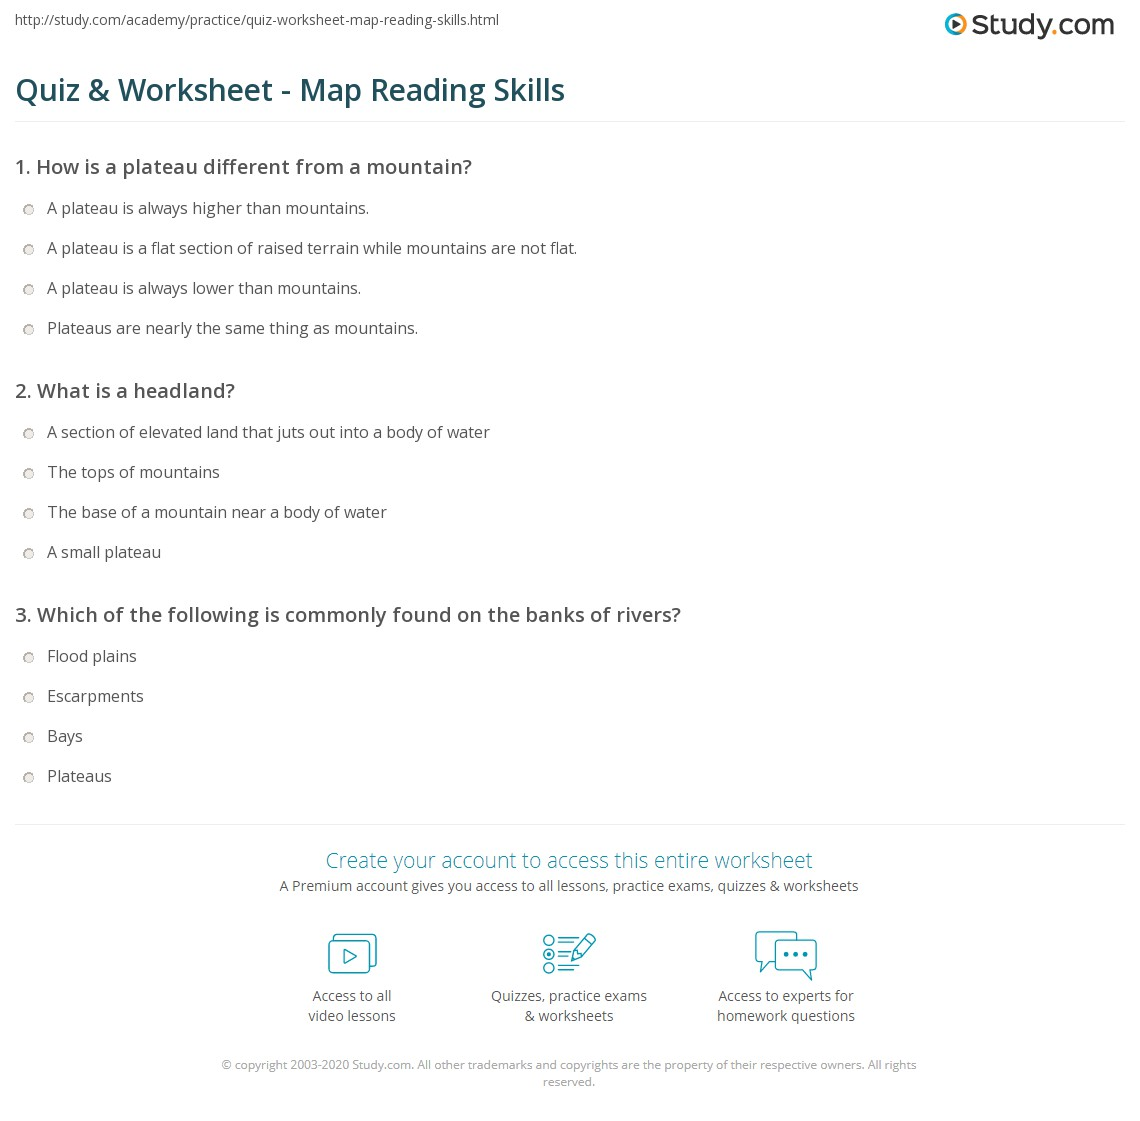 Quiz worksheet map reading skills study print how to read a map contours routes settlements worksheet ibookread PDF